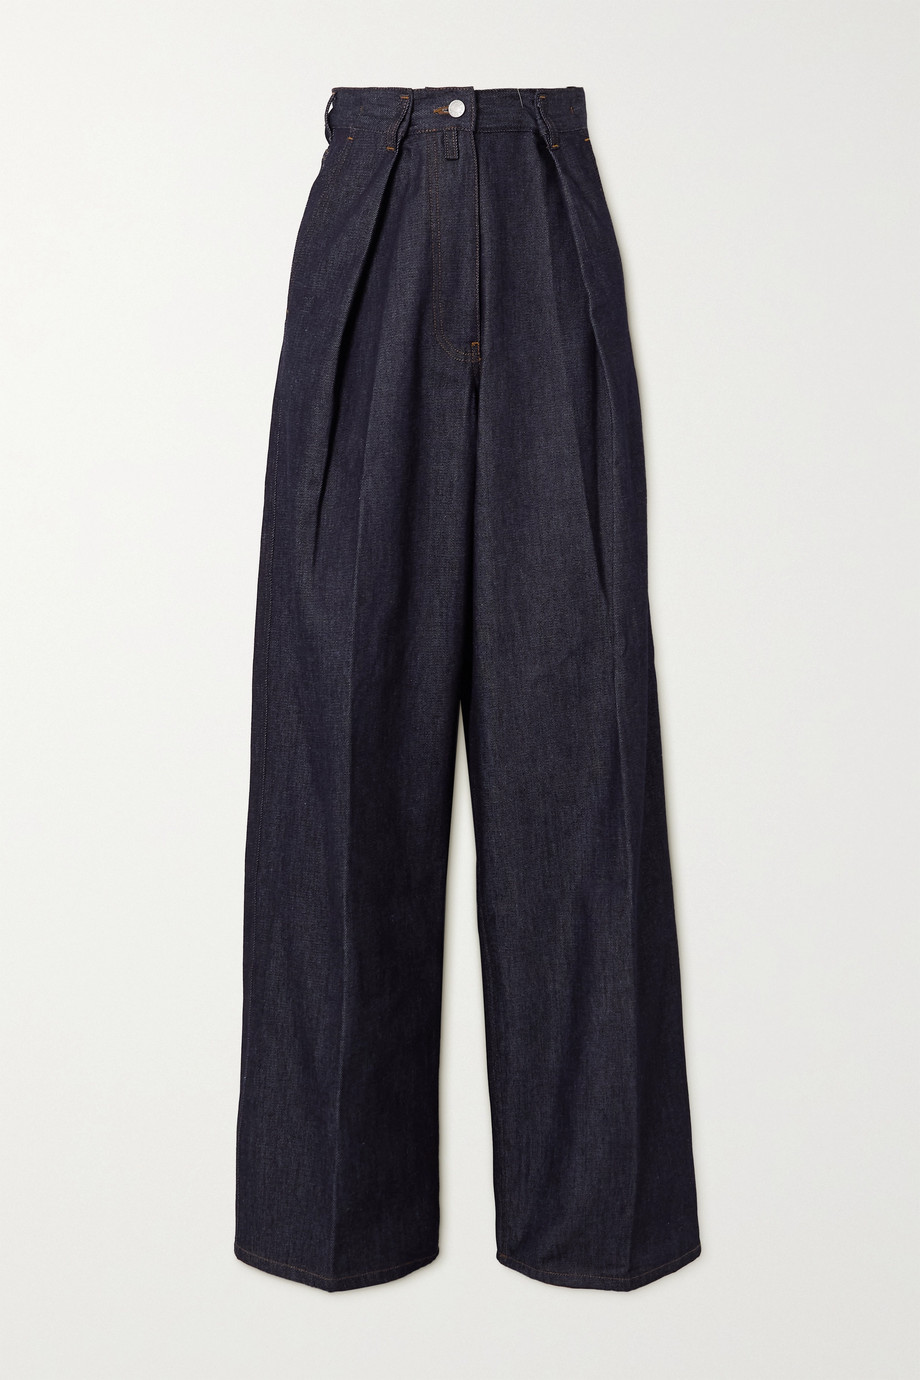 Dries Van Noten High-rise straight-leg jeans